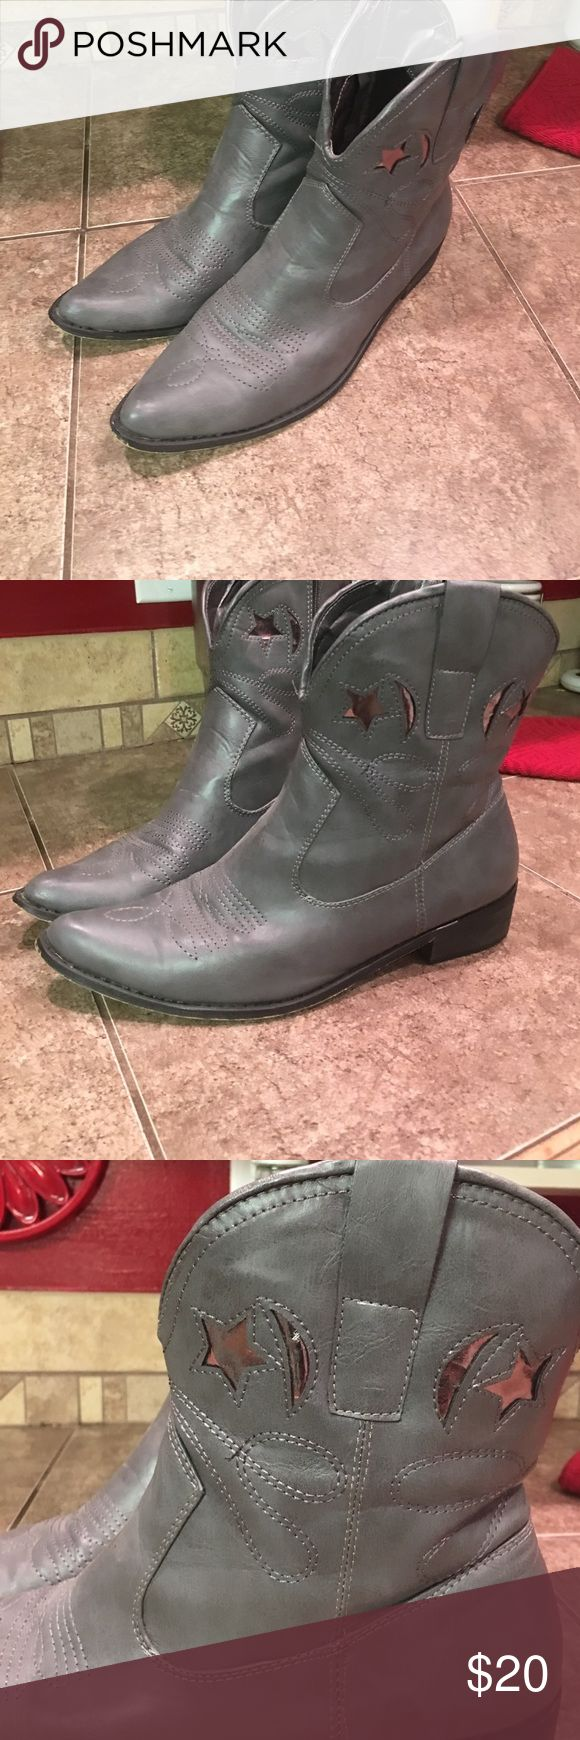 Short cowboy boots Gray ankle cowboy boots....worn but still a lot of life left! Pointy toe boots with silver details (stars and moons) zips on side Shoes Ankle Boots & Booties